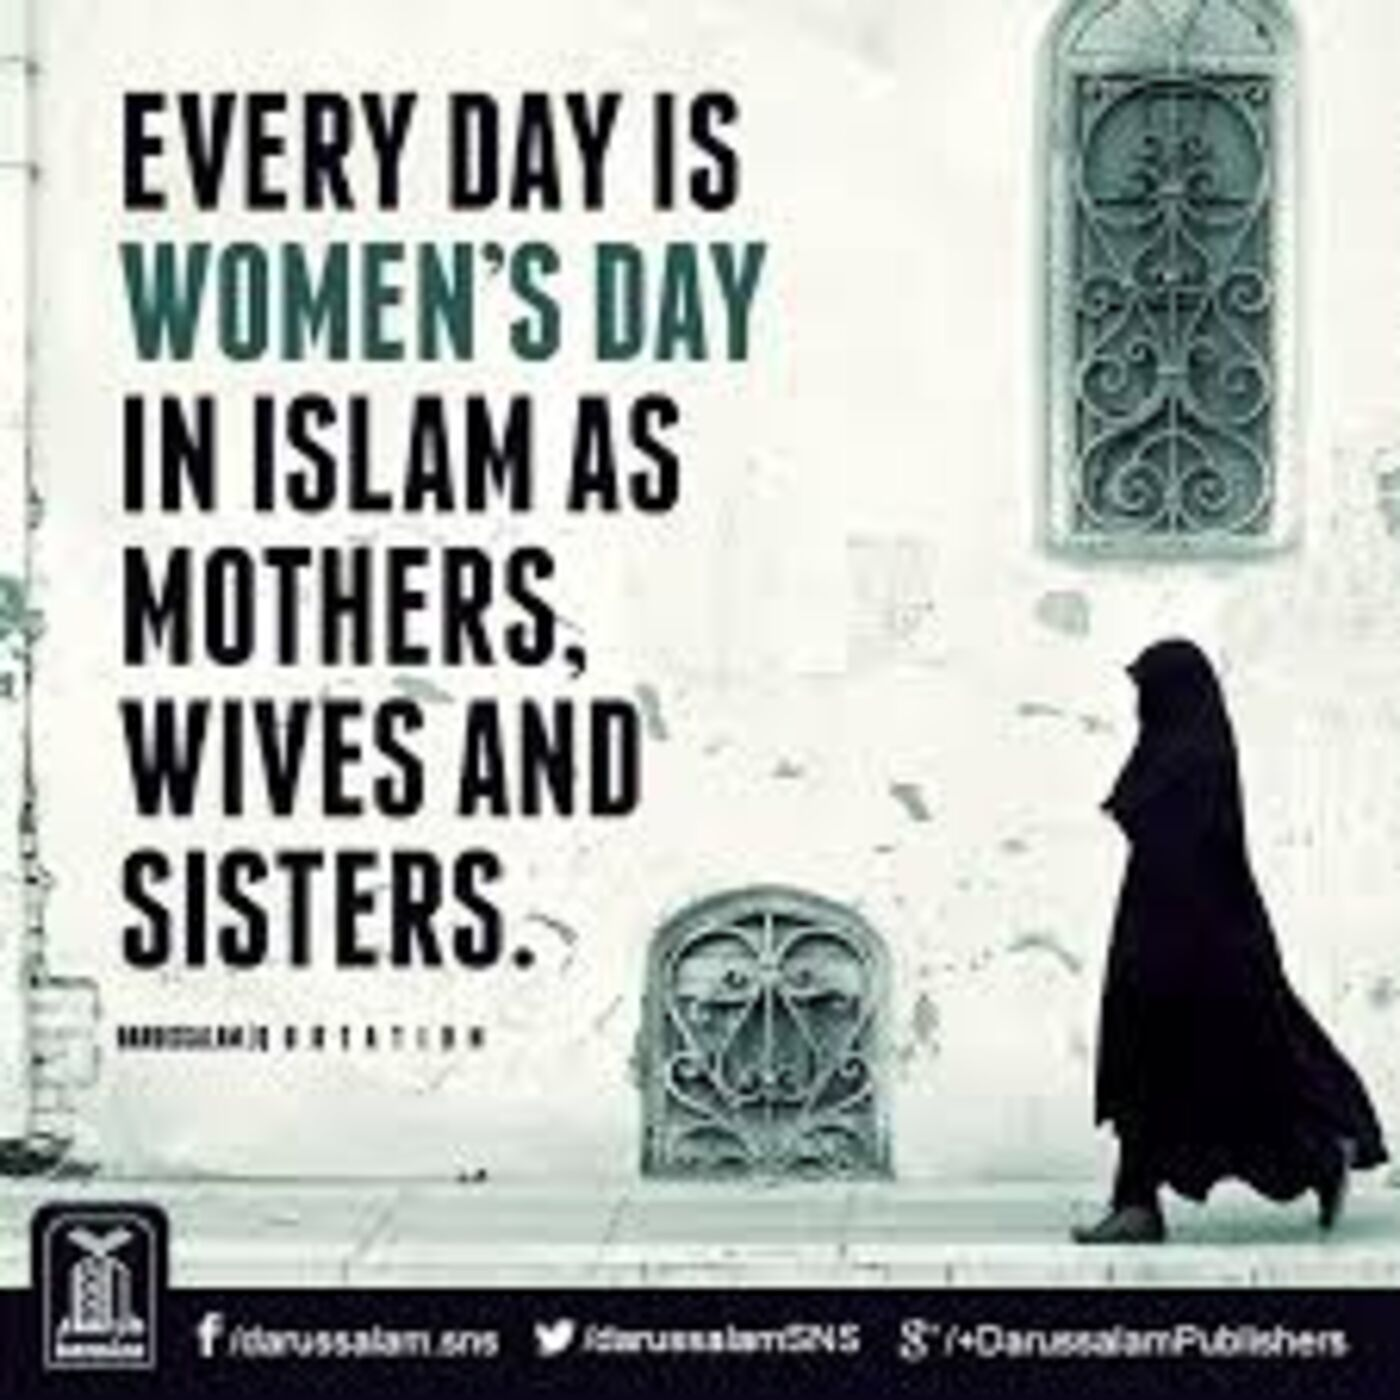 International Women's Day: The Islamic Perspective